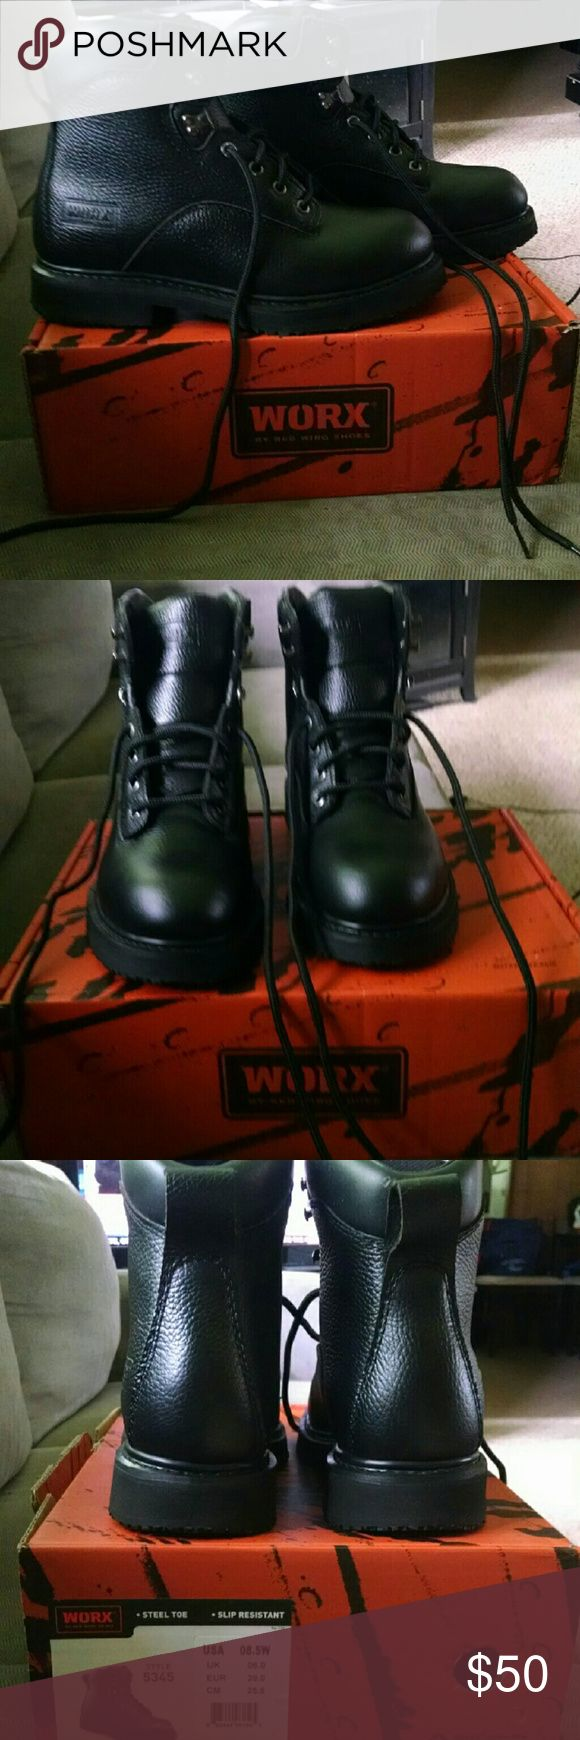 WORX by Red Wing Women's Black Work Boots In a Size 8.5 (room for thick winter socks on me, usually an 8M). With a steel toe, high ankle height, heavy duty for industrial workplace. NWT, never worn, have been in original box since purchase. Excellent quality leather work boots. MUST GO! Red Wing Shoes Shoes Combat & Moto Boots